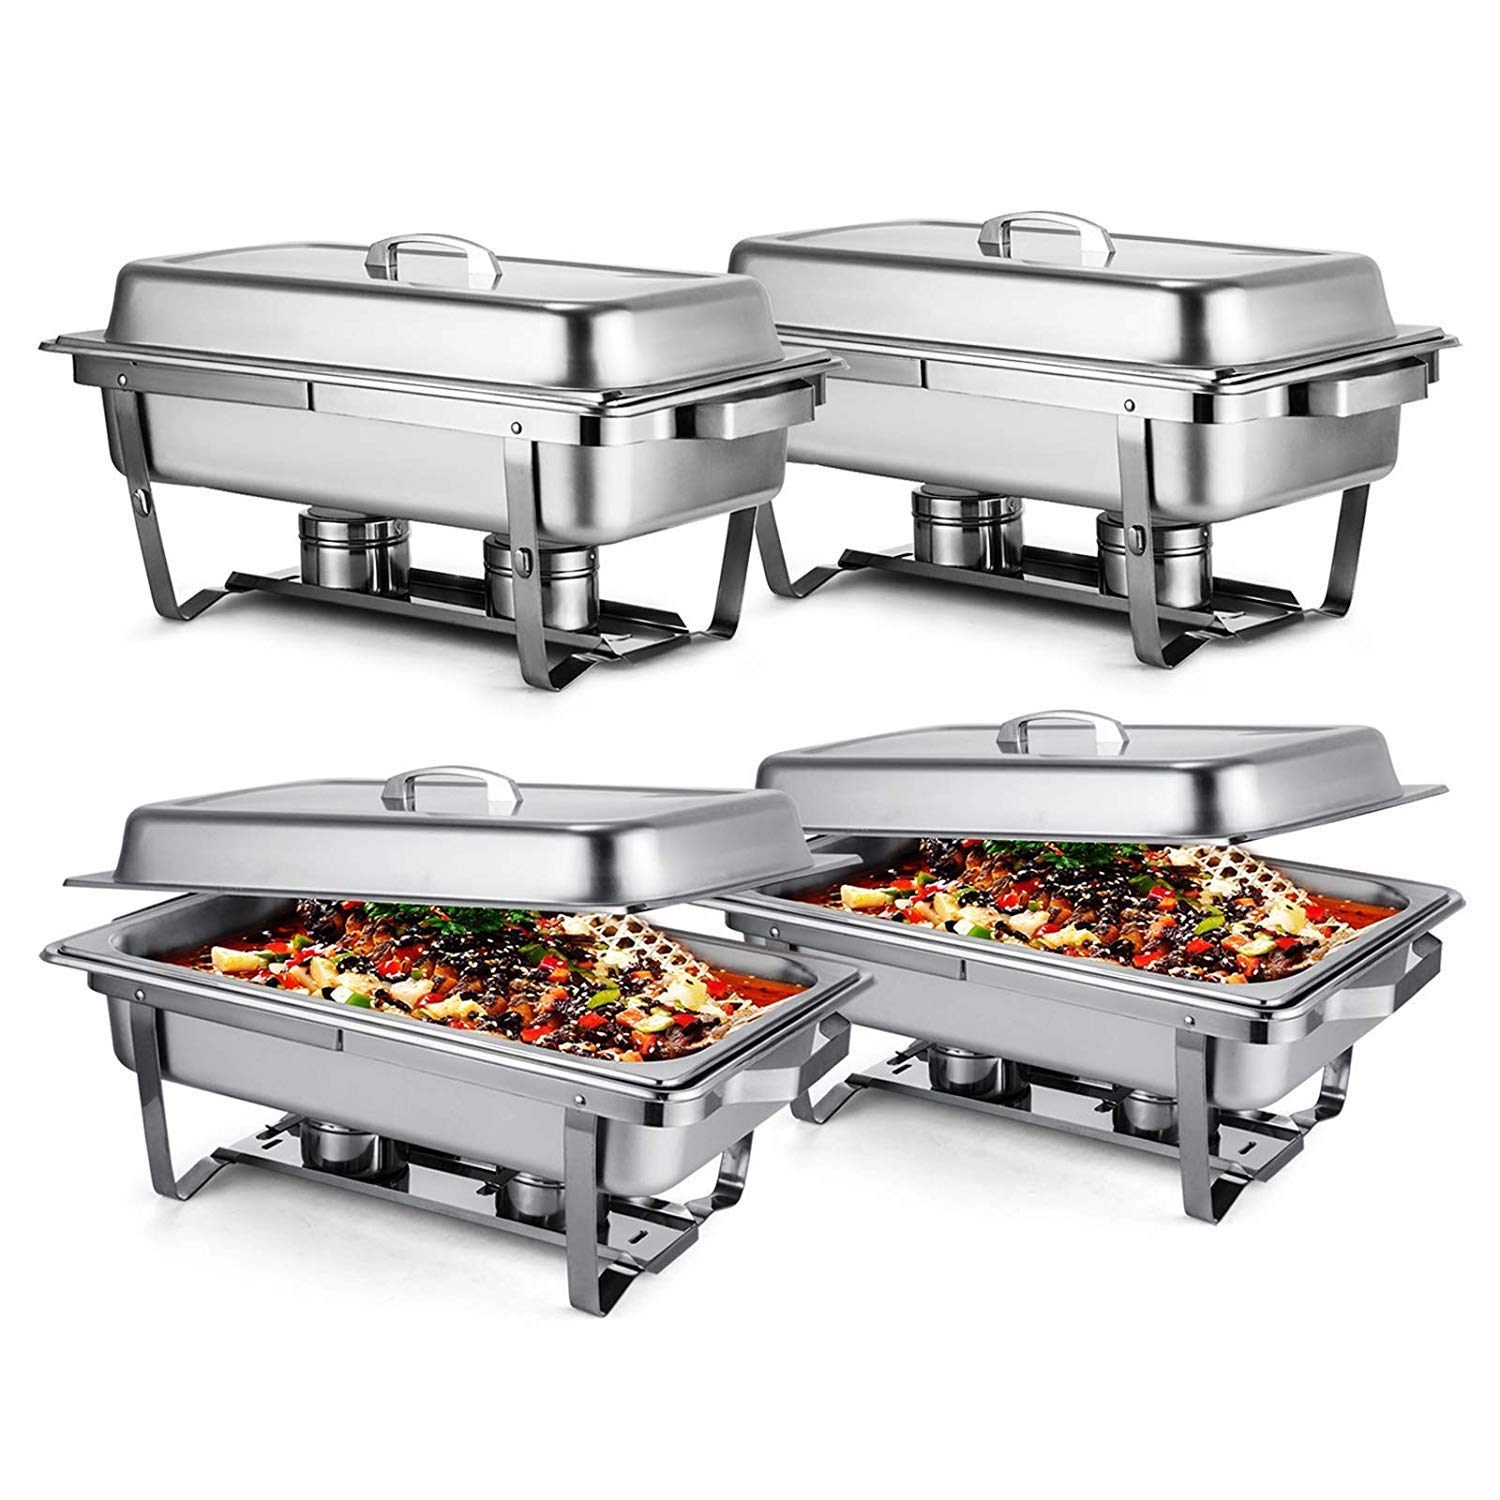 4 Pack Chafing Dish Sets Buffet Catering Stainless Steel Food Warmer 9L//8 Quart